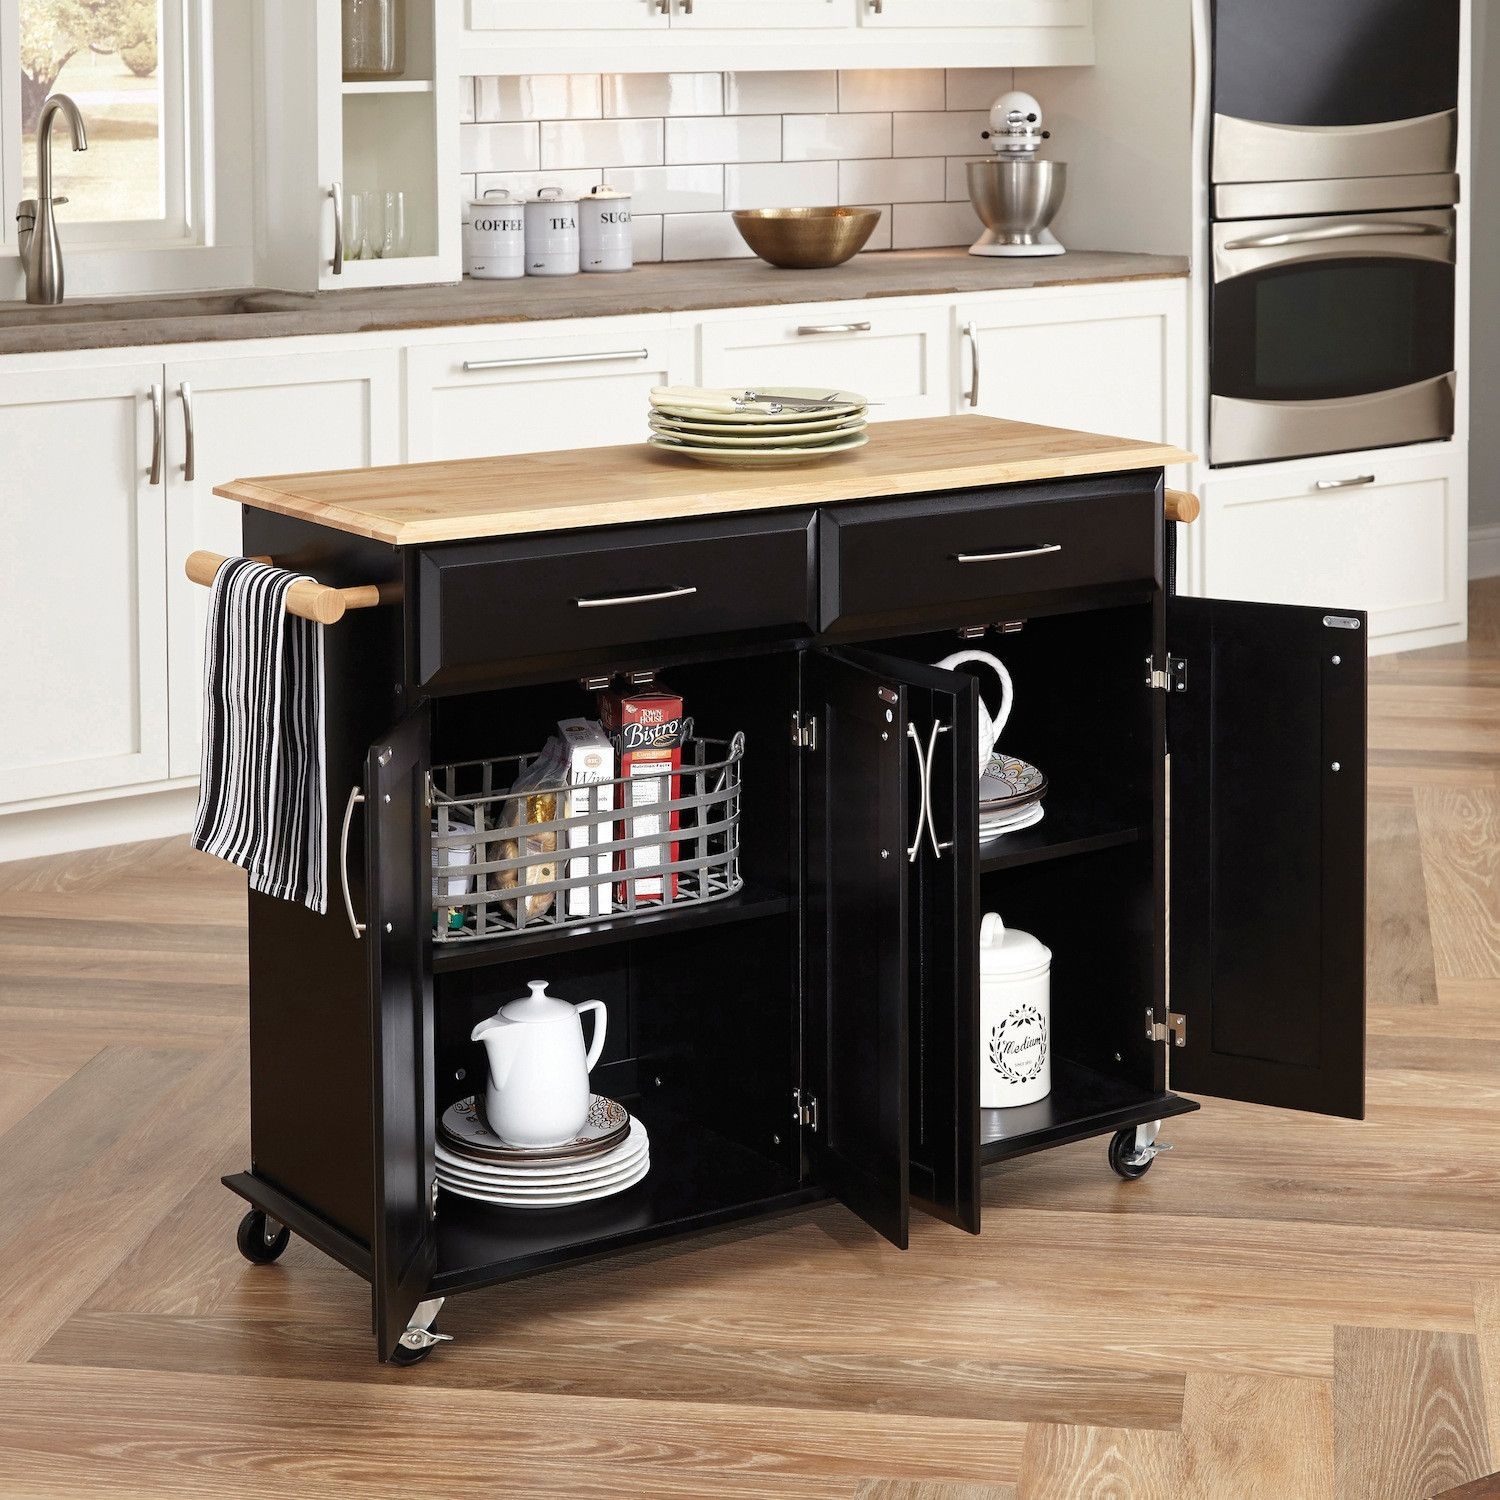 Charlton Home Reg Hamilton Kitchen Island With Wood Top Rolling Kitchen Island Kitchen Island Cart Kitchen Island Cabinets